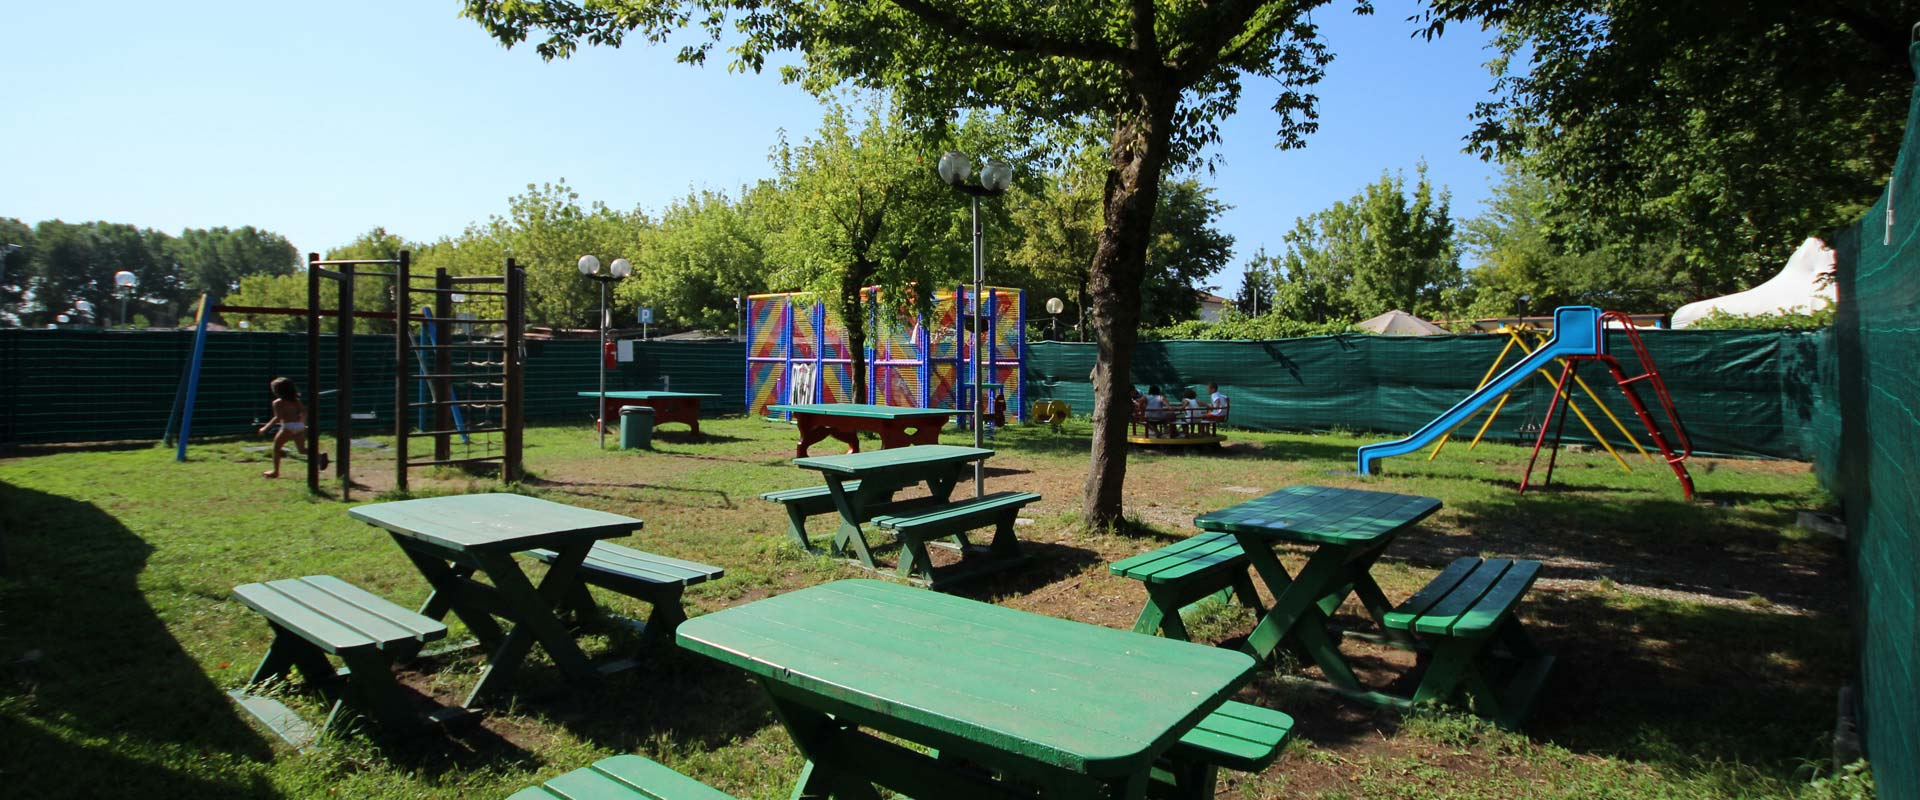 camping in toscana parco giochi